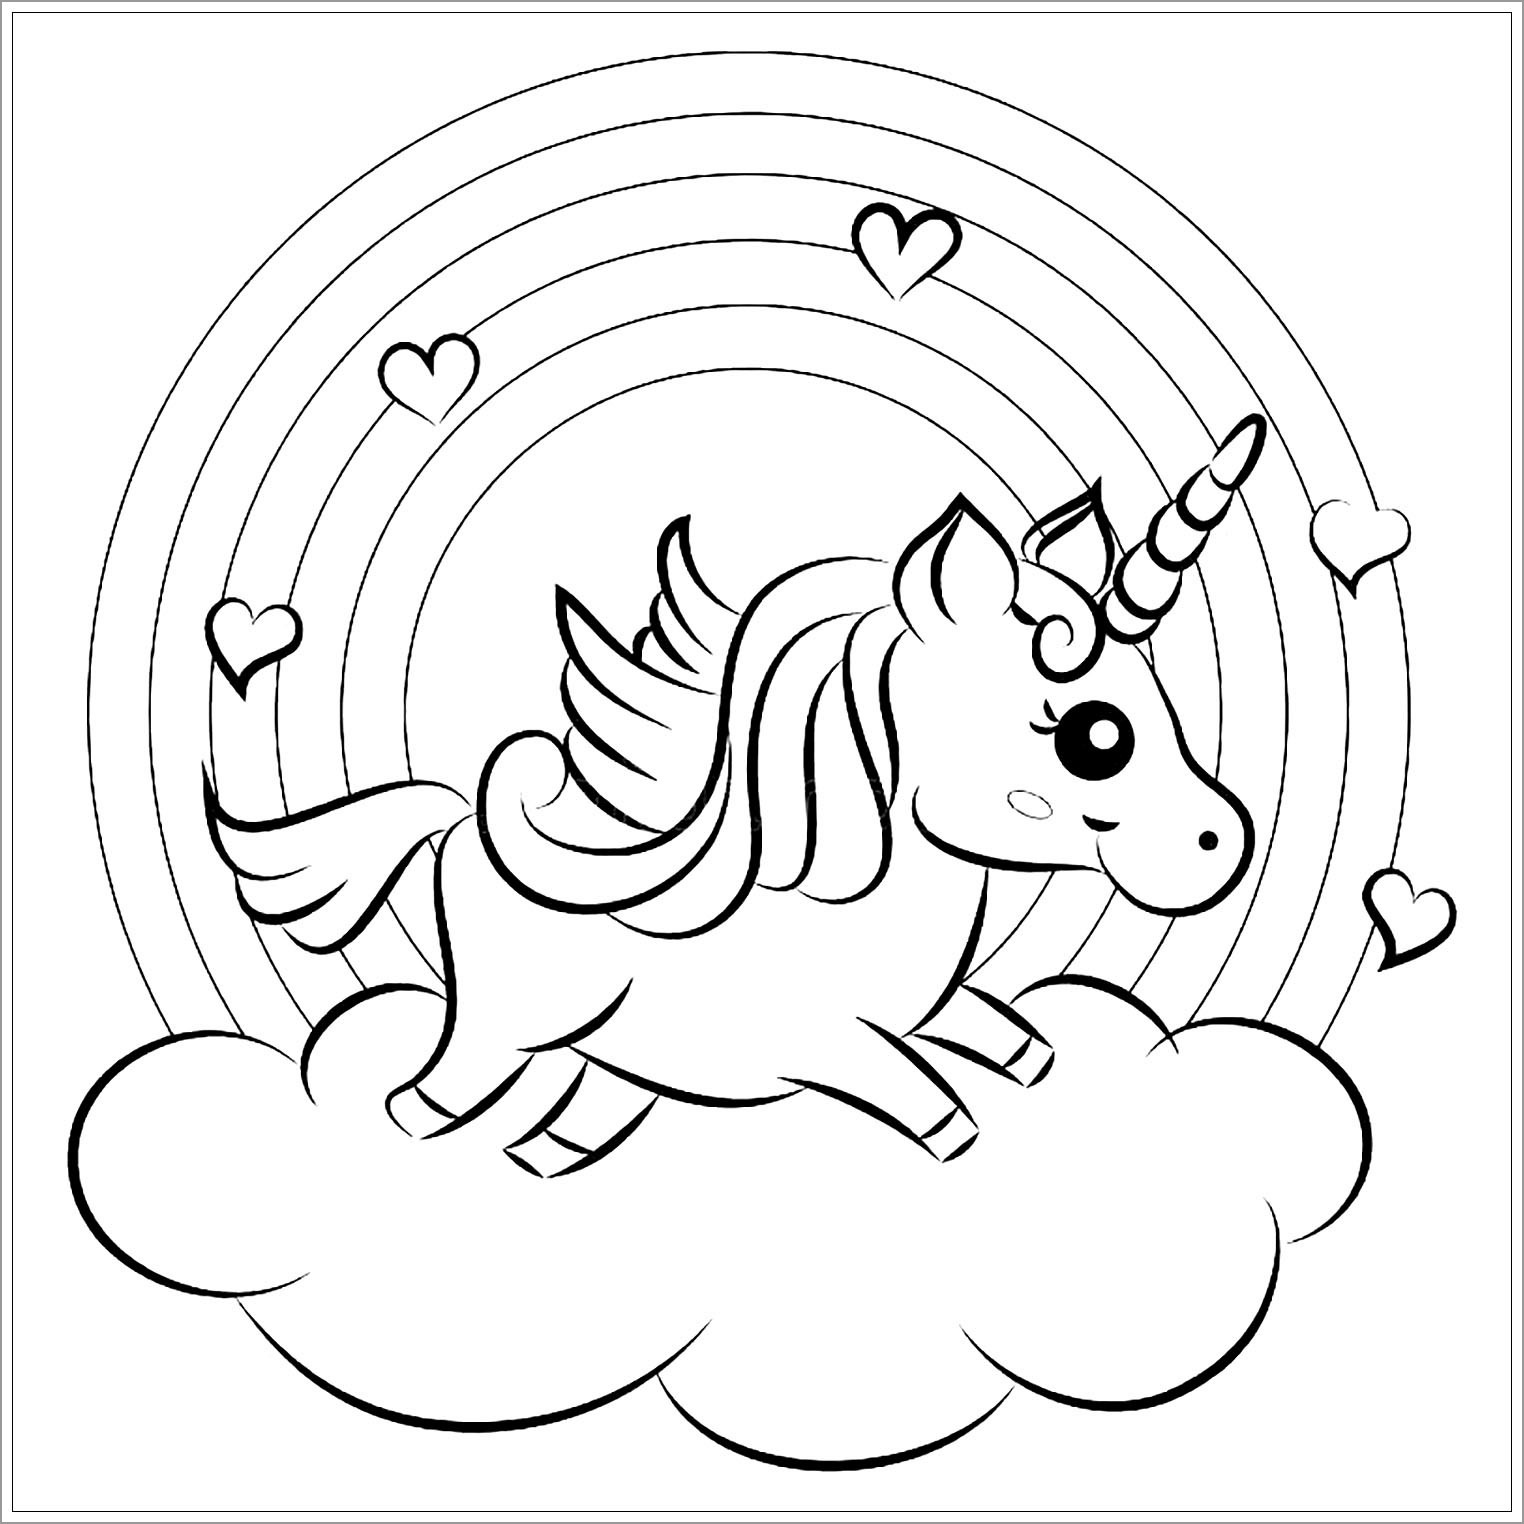 Baby Unicorns Coloring Page for Kids